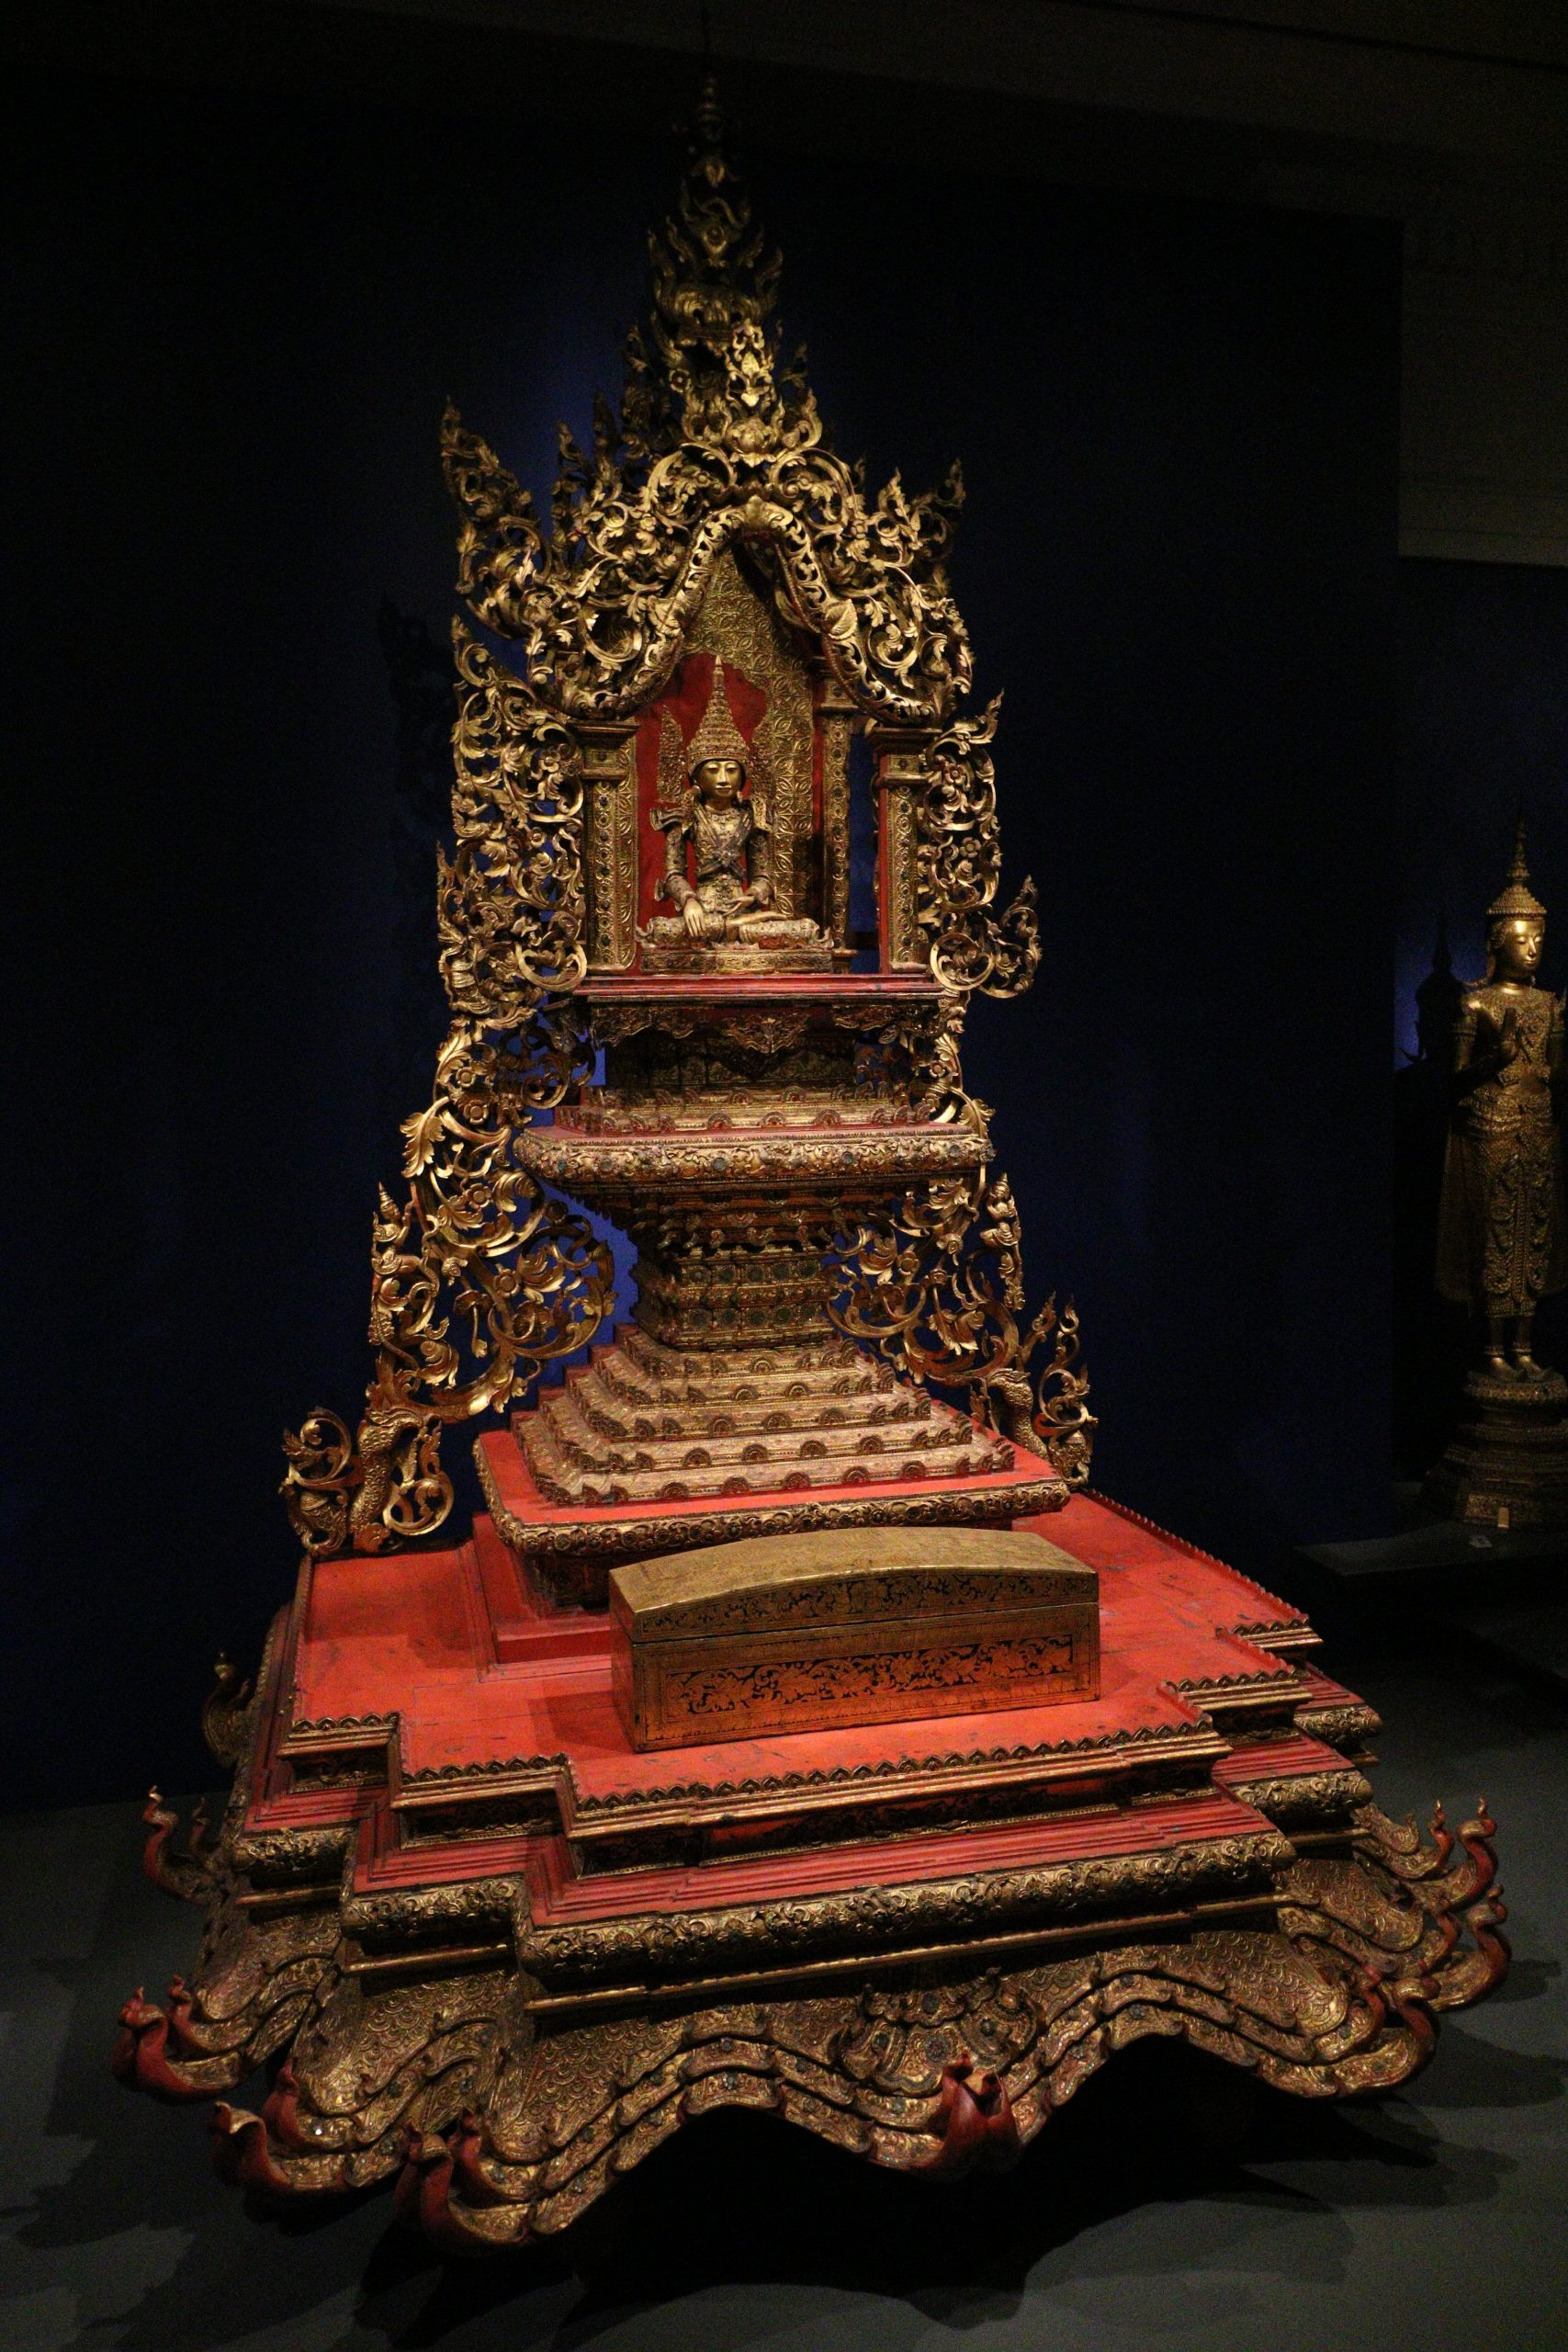 Throne for Buddha, San Francisco Asian Art Museum